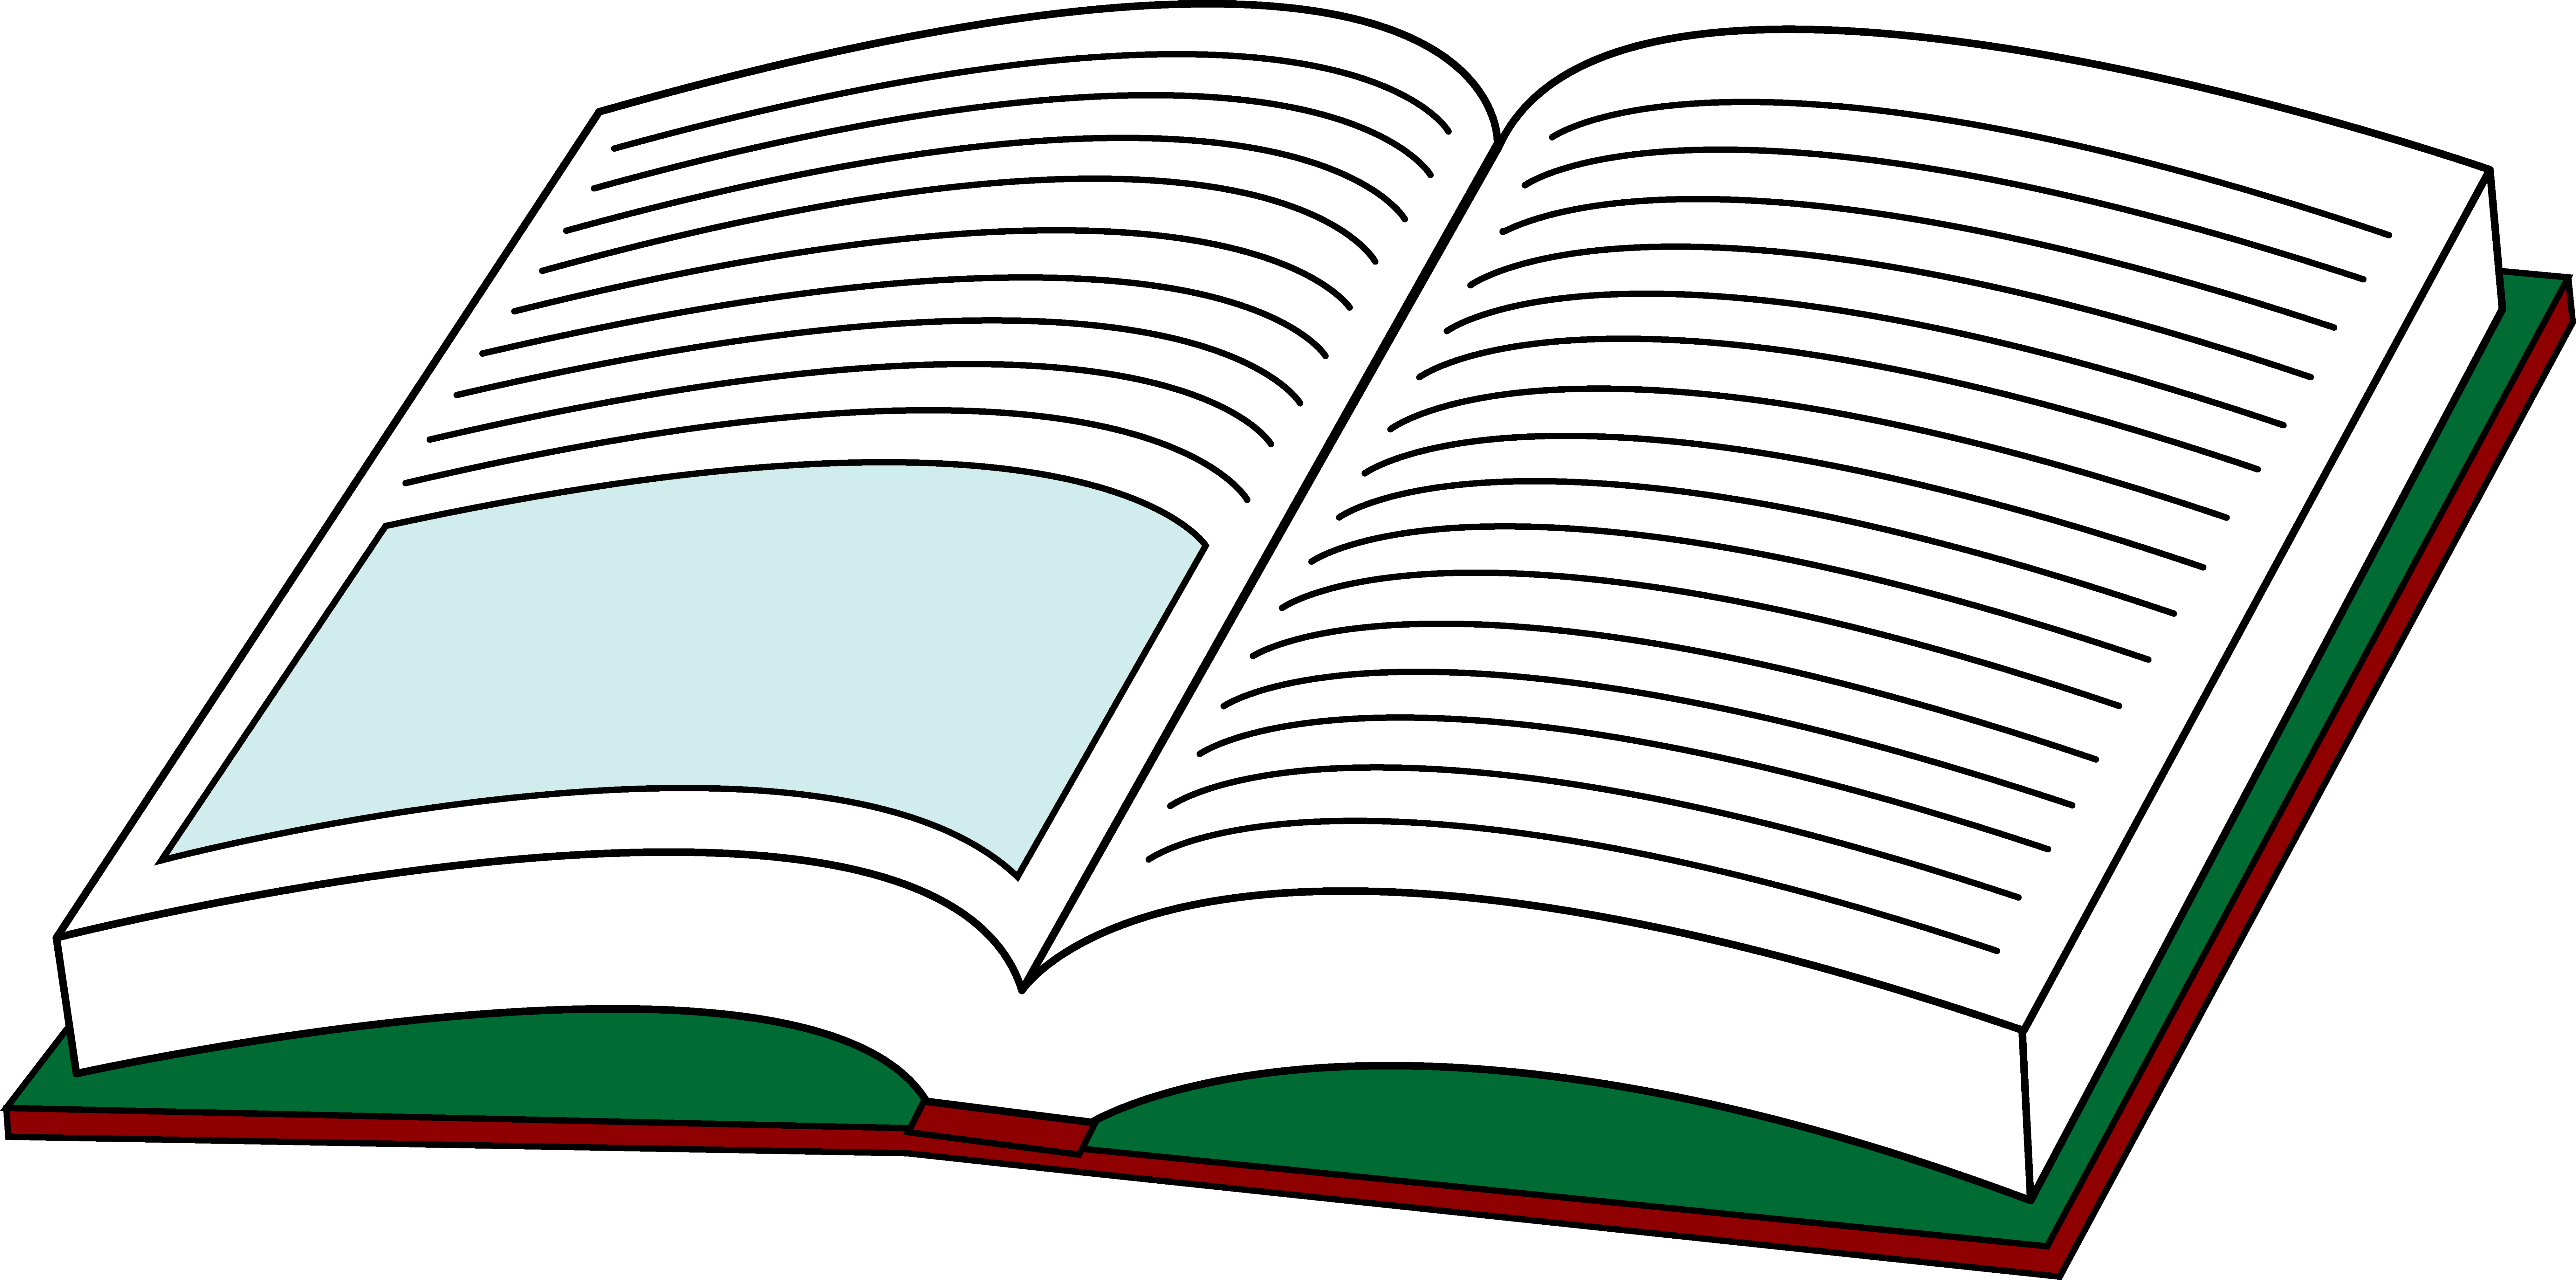 Open text. Your book clipart free